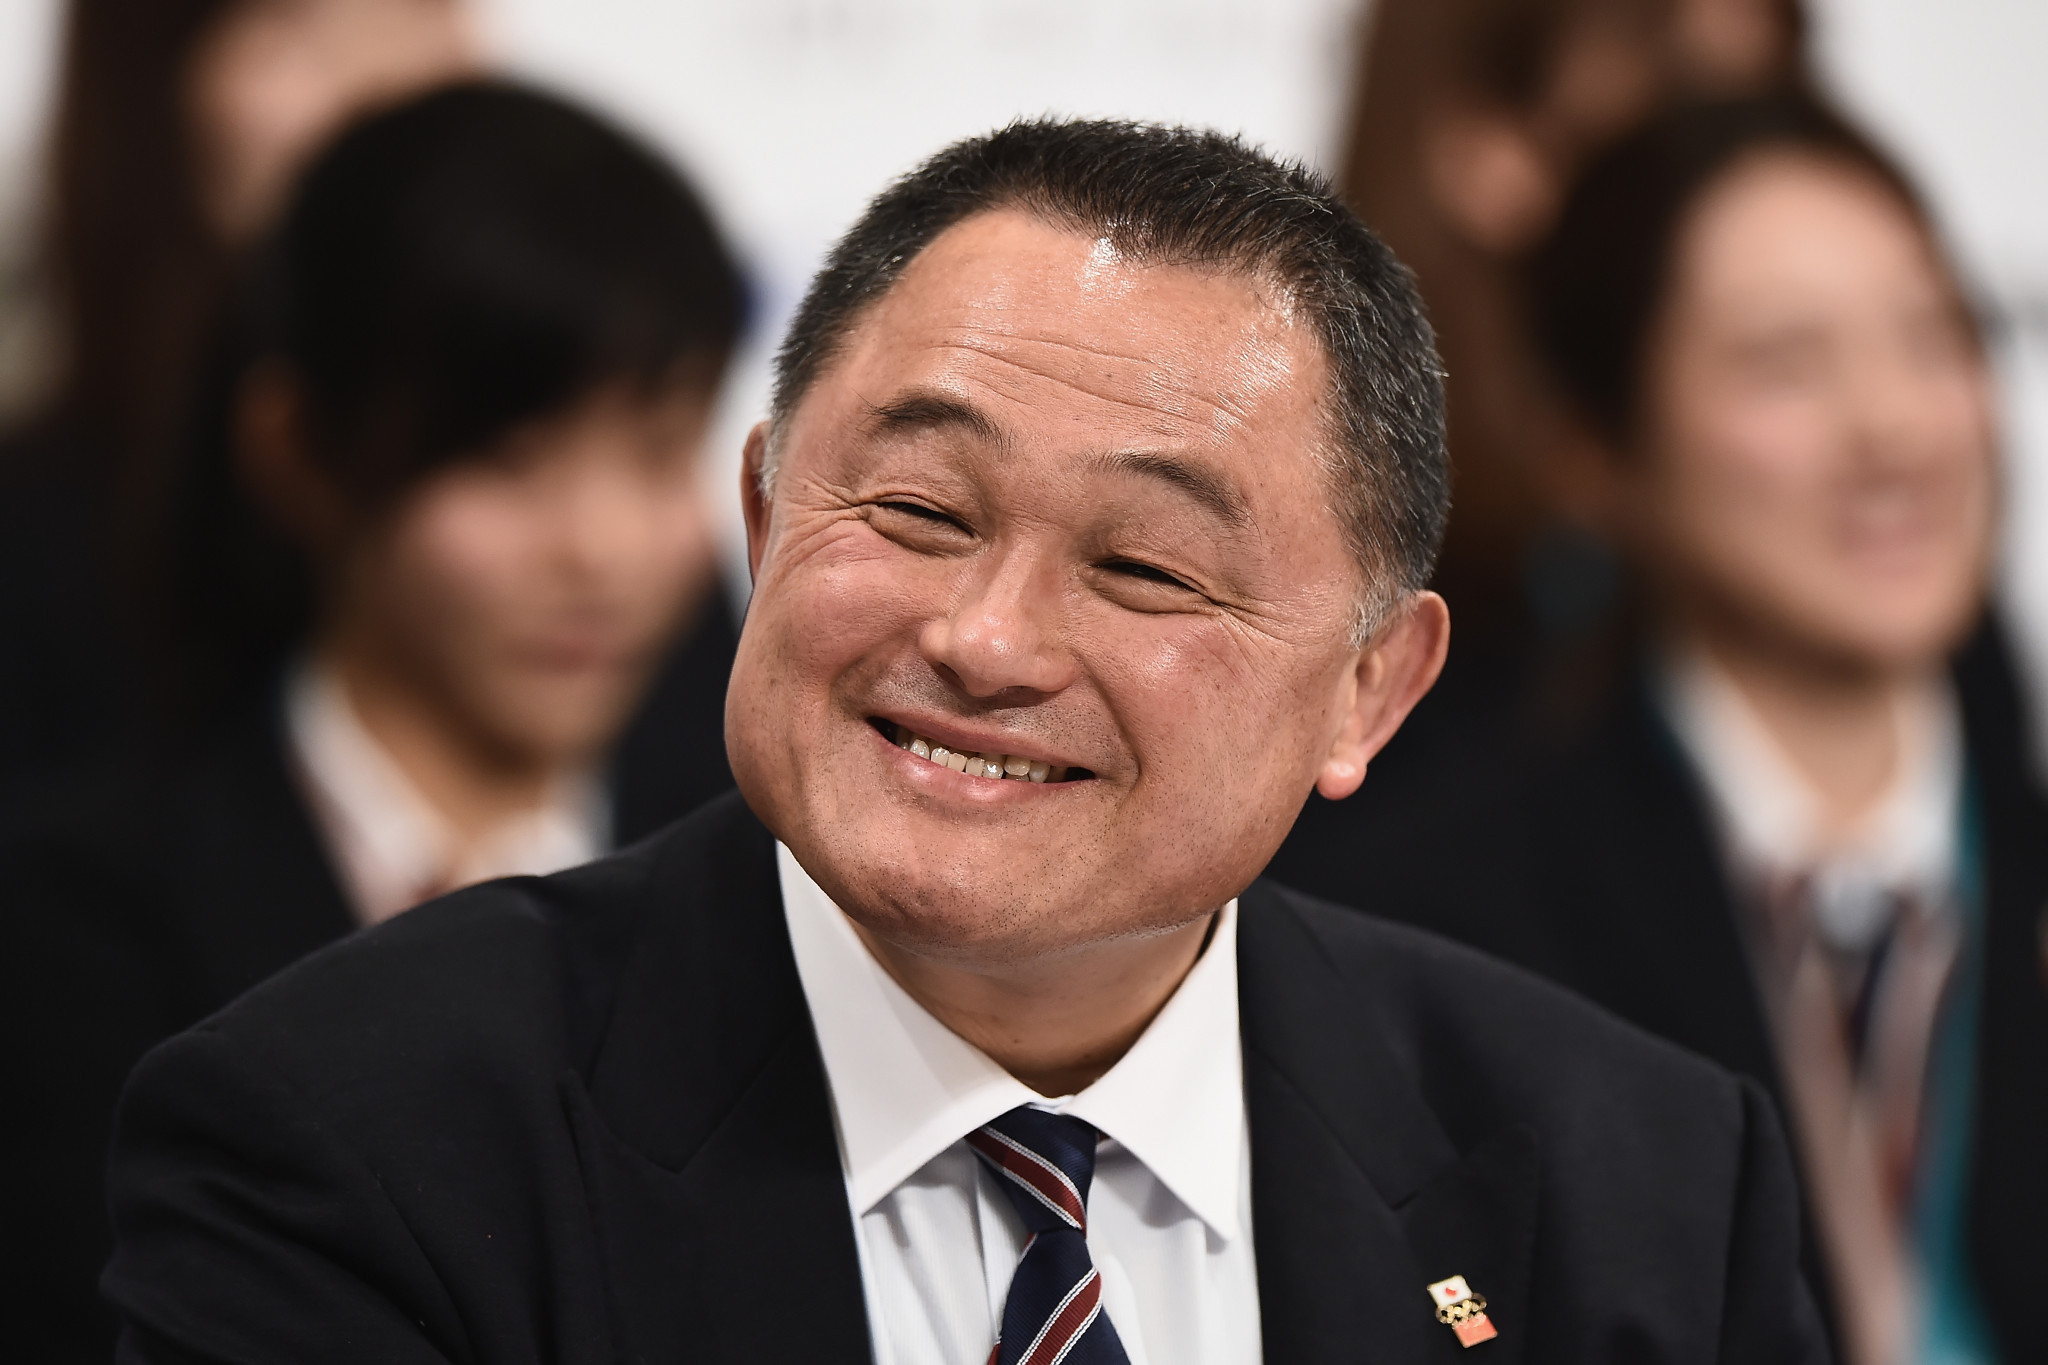 """JOC President Yasuhiro Yamashita claimed his organisation and the Tokyo 2020 Organising Committee are """"advancing step by step"""" towards next year's Games ©Getty Images"""